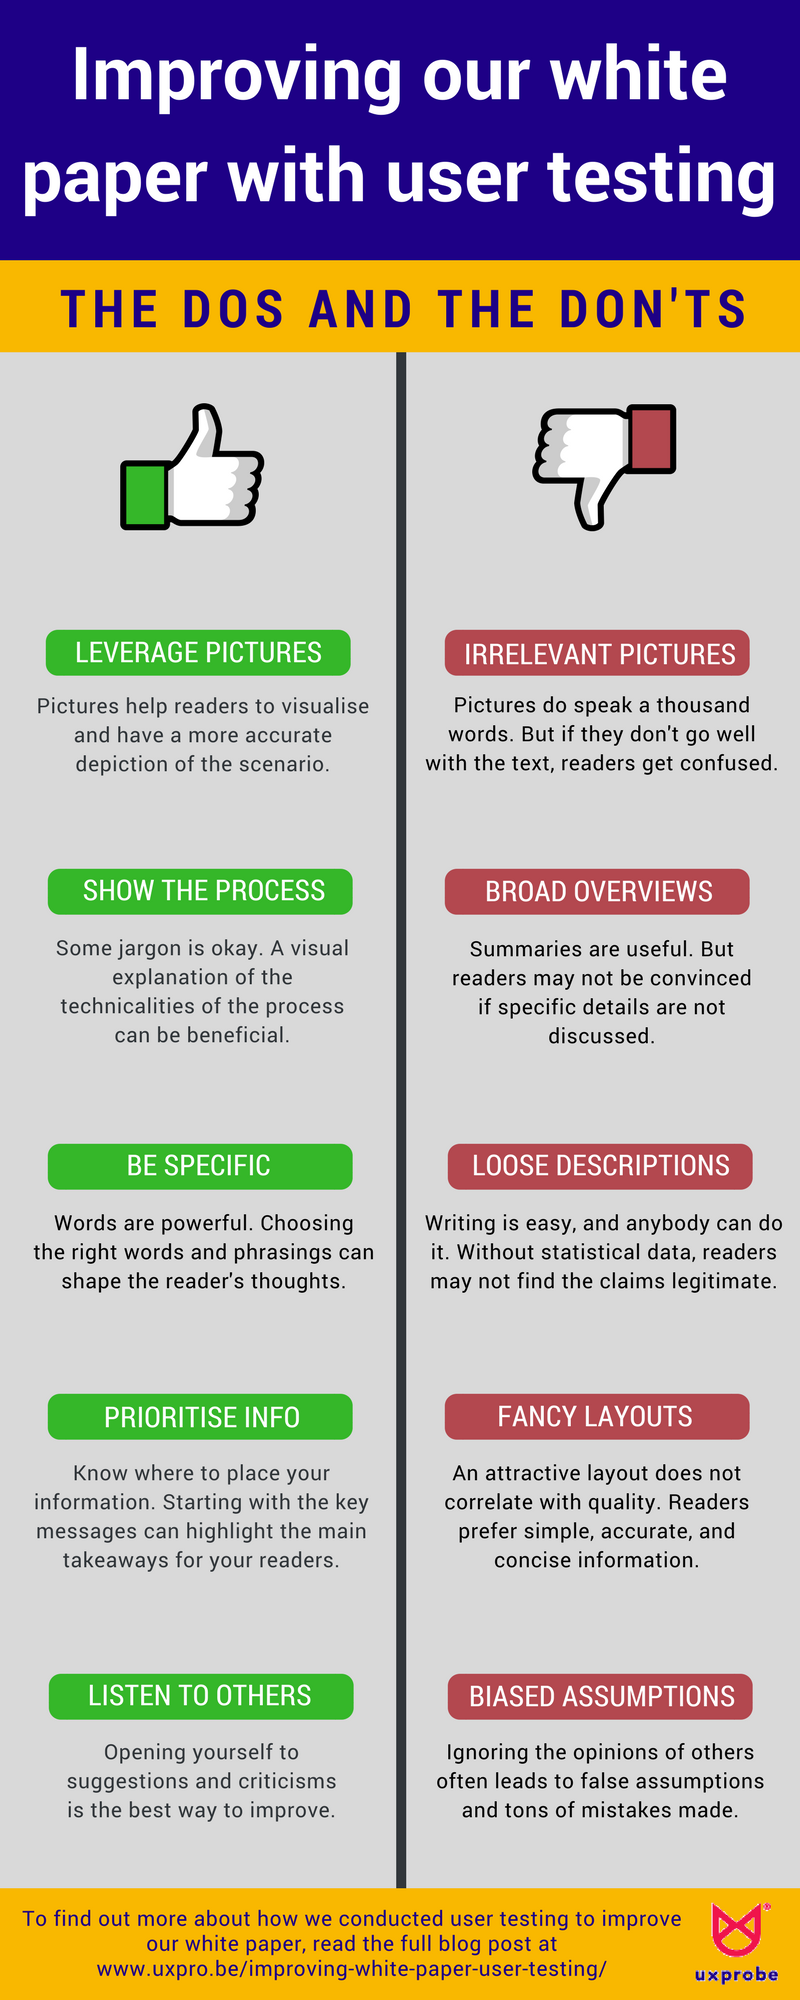 Improving our white paper with user testing infographic